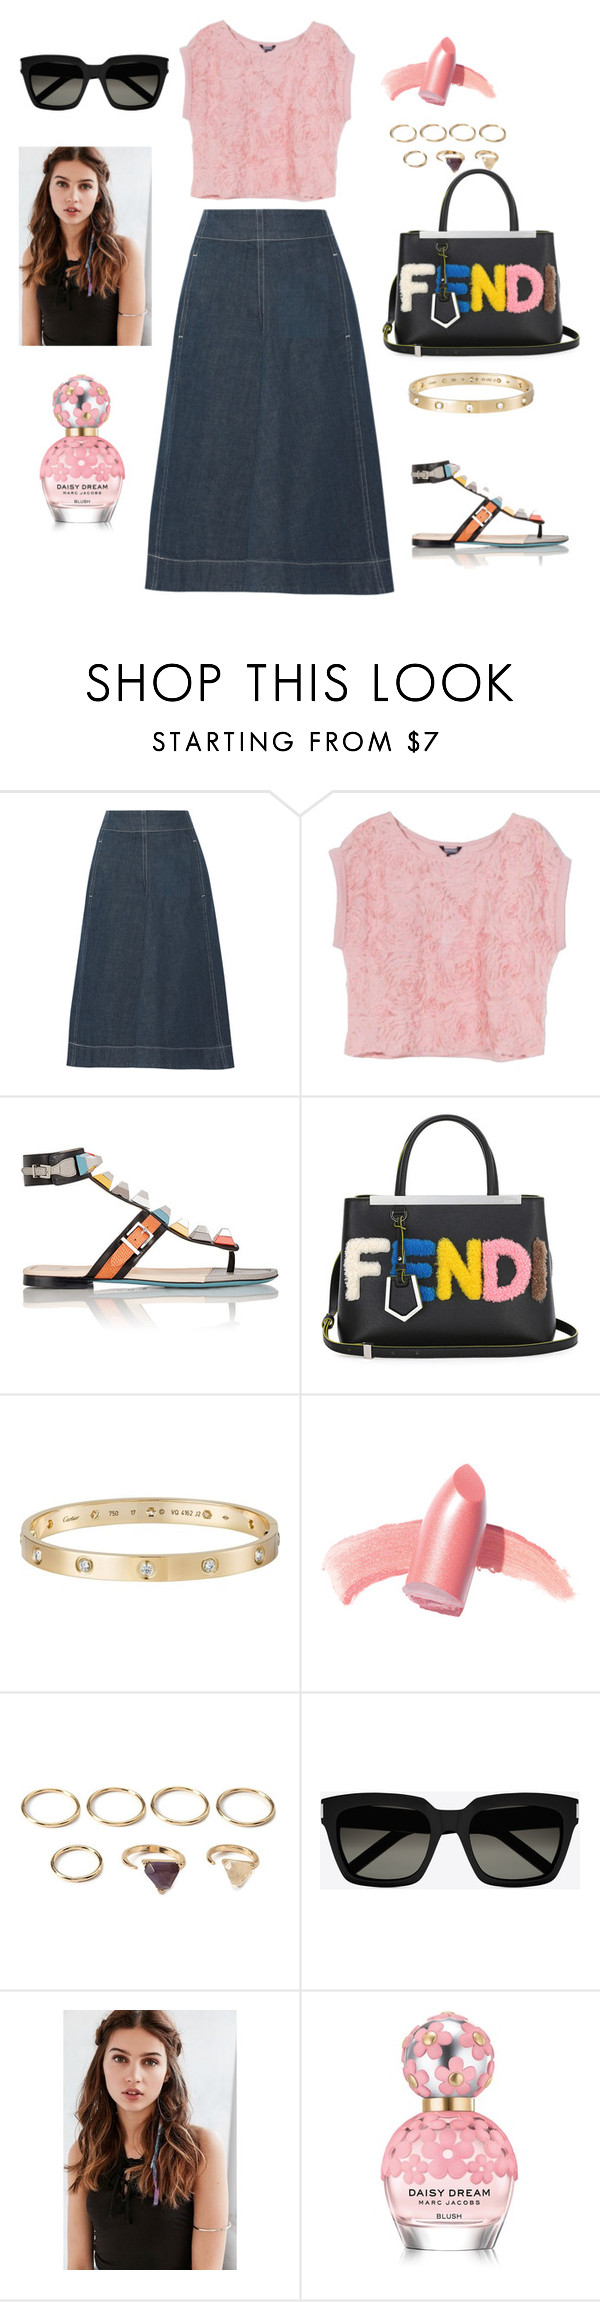 """pink and denim"" by aagyekumwaa ❤ liked on Polyvore featuring Lemaire, Fendi, Cartier, Elizabeth Arden, Forever 21, Yves Saint Laurent, REGALROSE and Marc Jacobs"